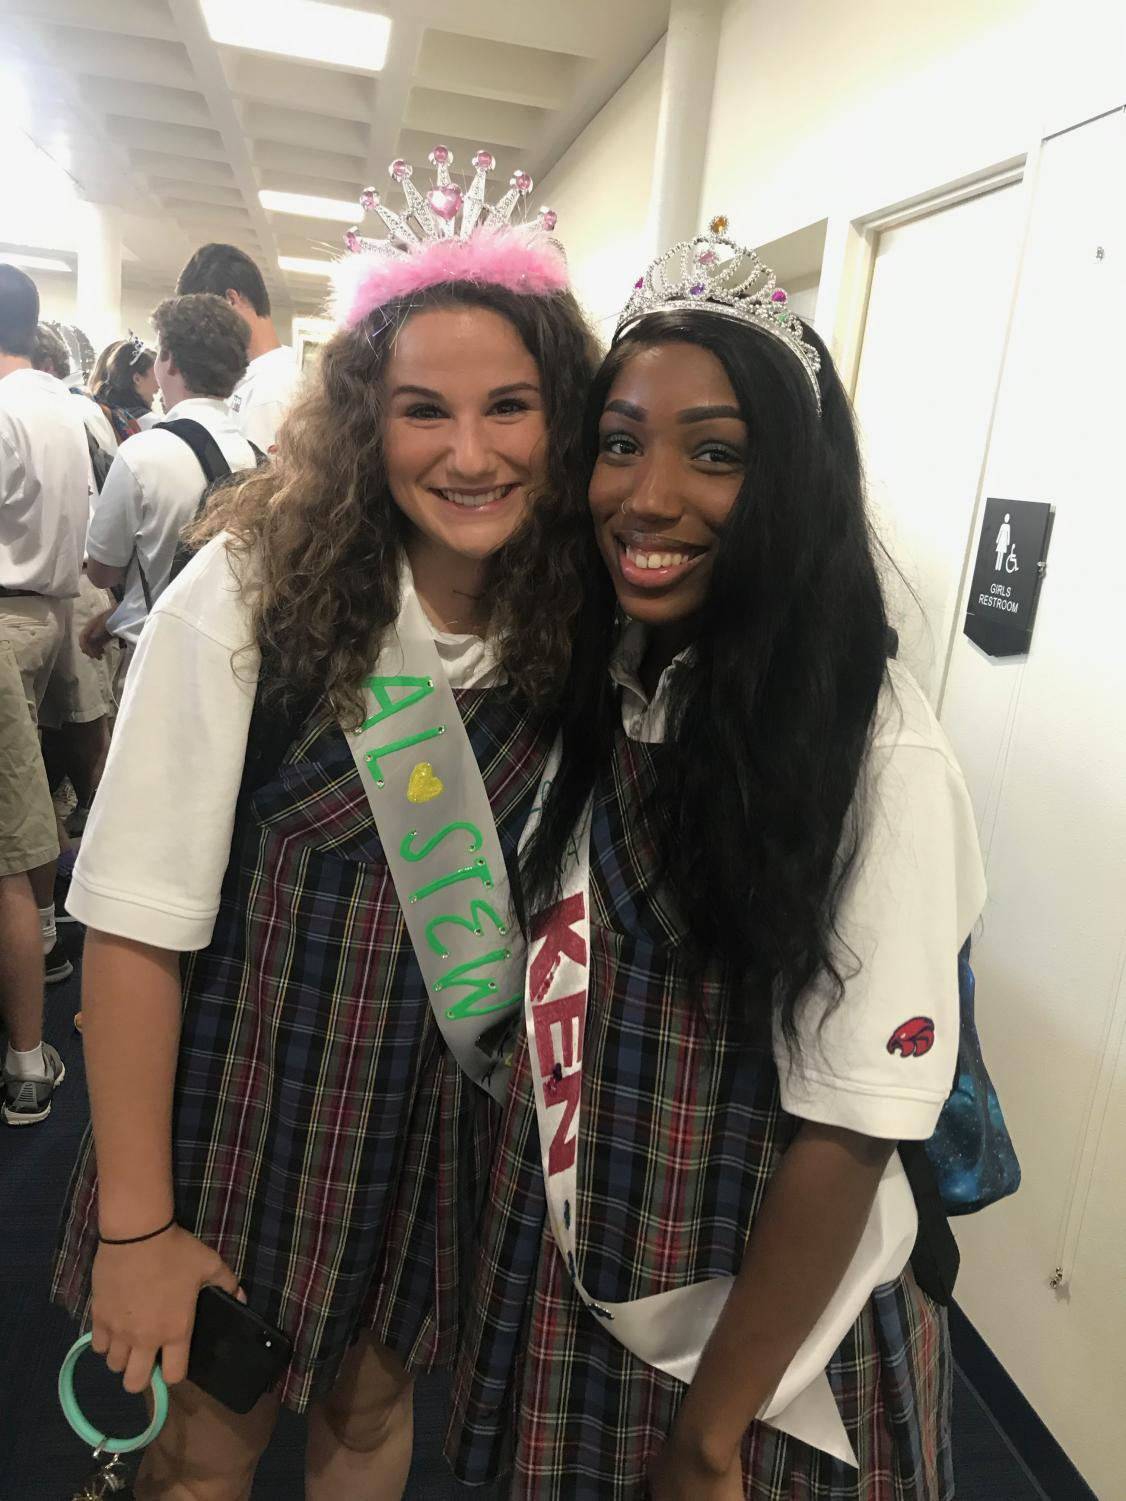 Allie Stewart '20 and Kennedy Smith '20 are queens for the day on their first day back at school as seniors.